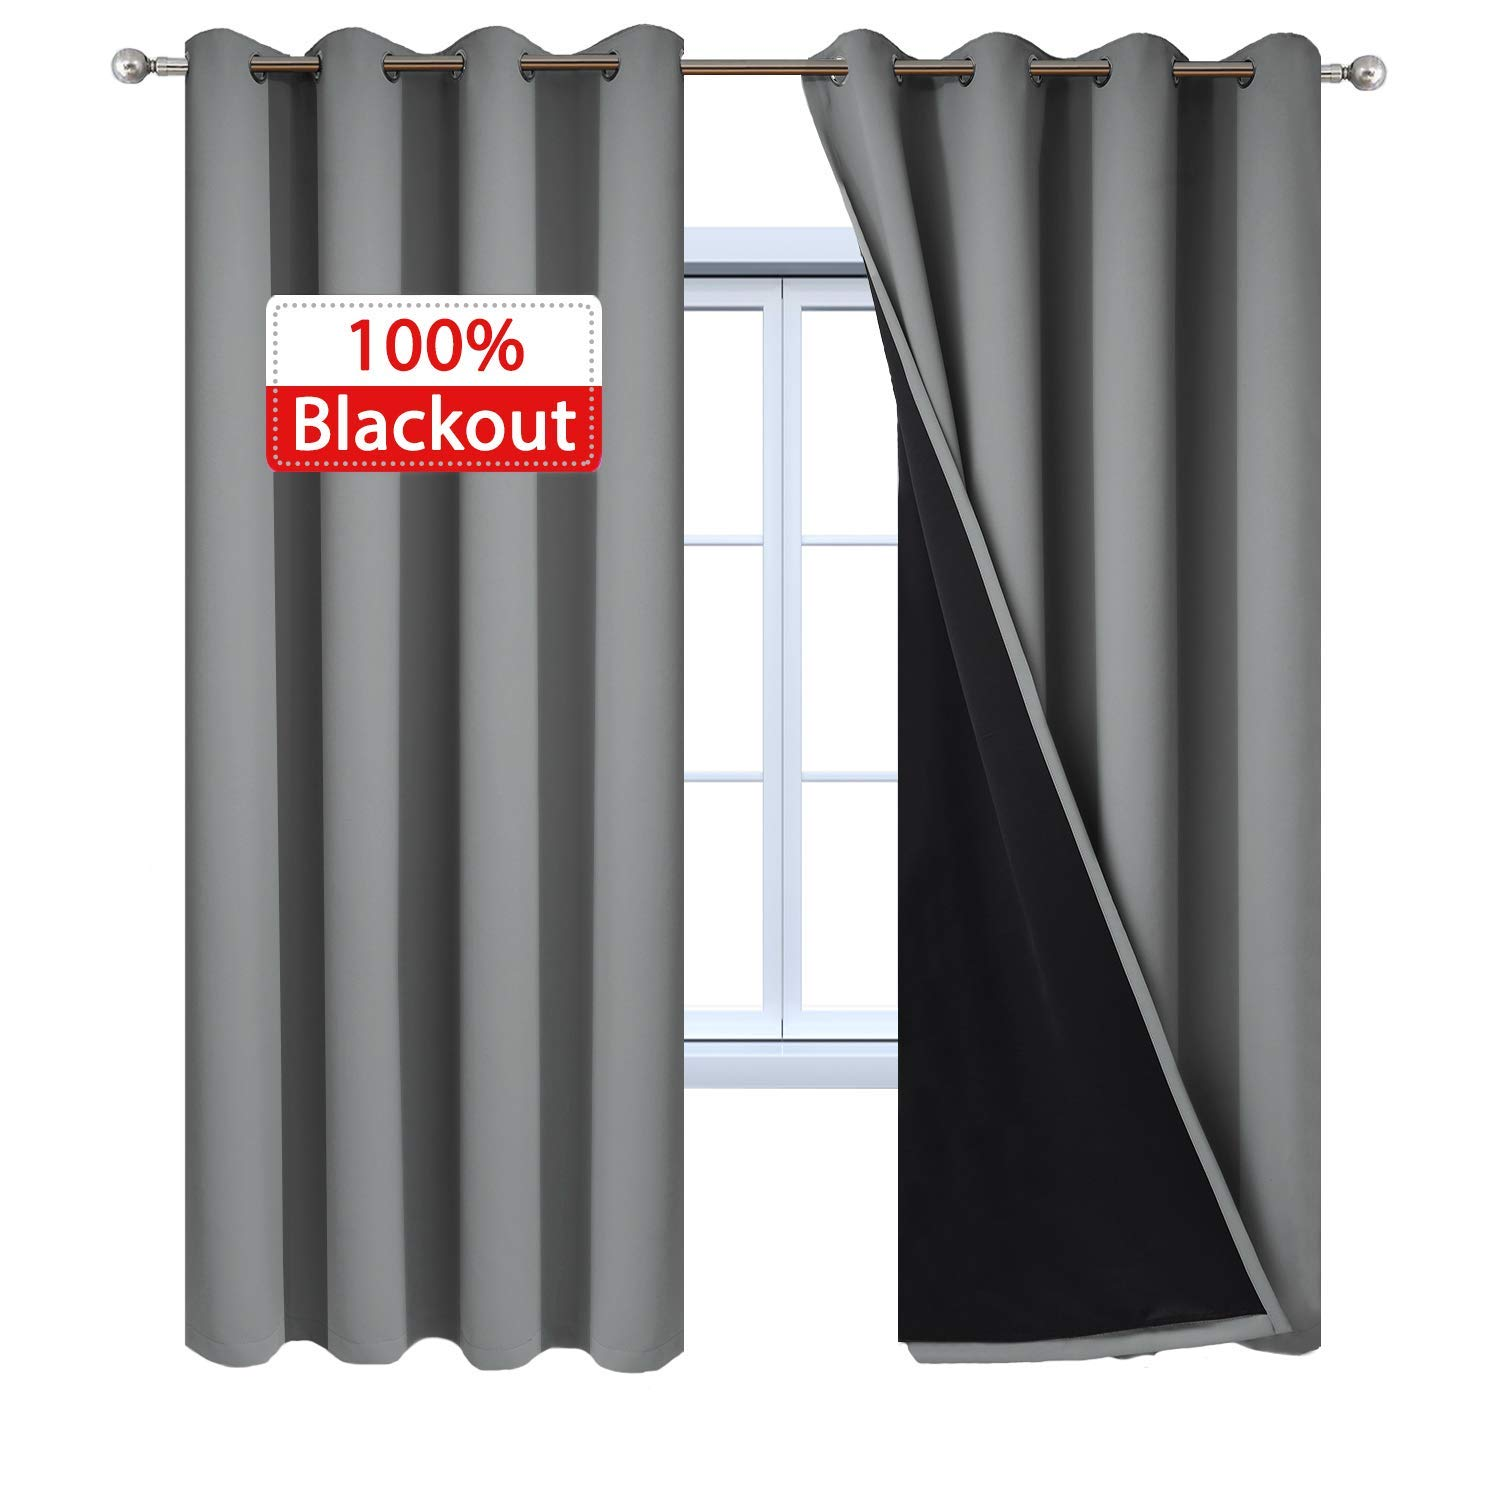 Yakamok 100% Blackout Curtains 84 Inches Long, 2 Thick Layers Heat and Full Light Blocking Soft Thermal Insulated Drapes for Bedroom(52'' Wide Each Panel, Grey, 2 Panels) by Yakamok